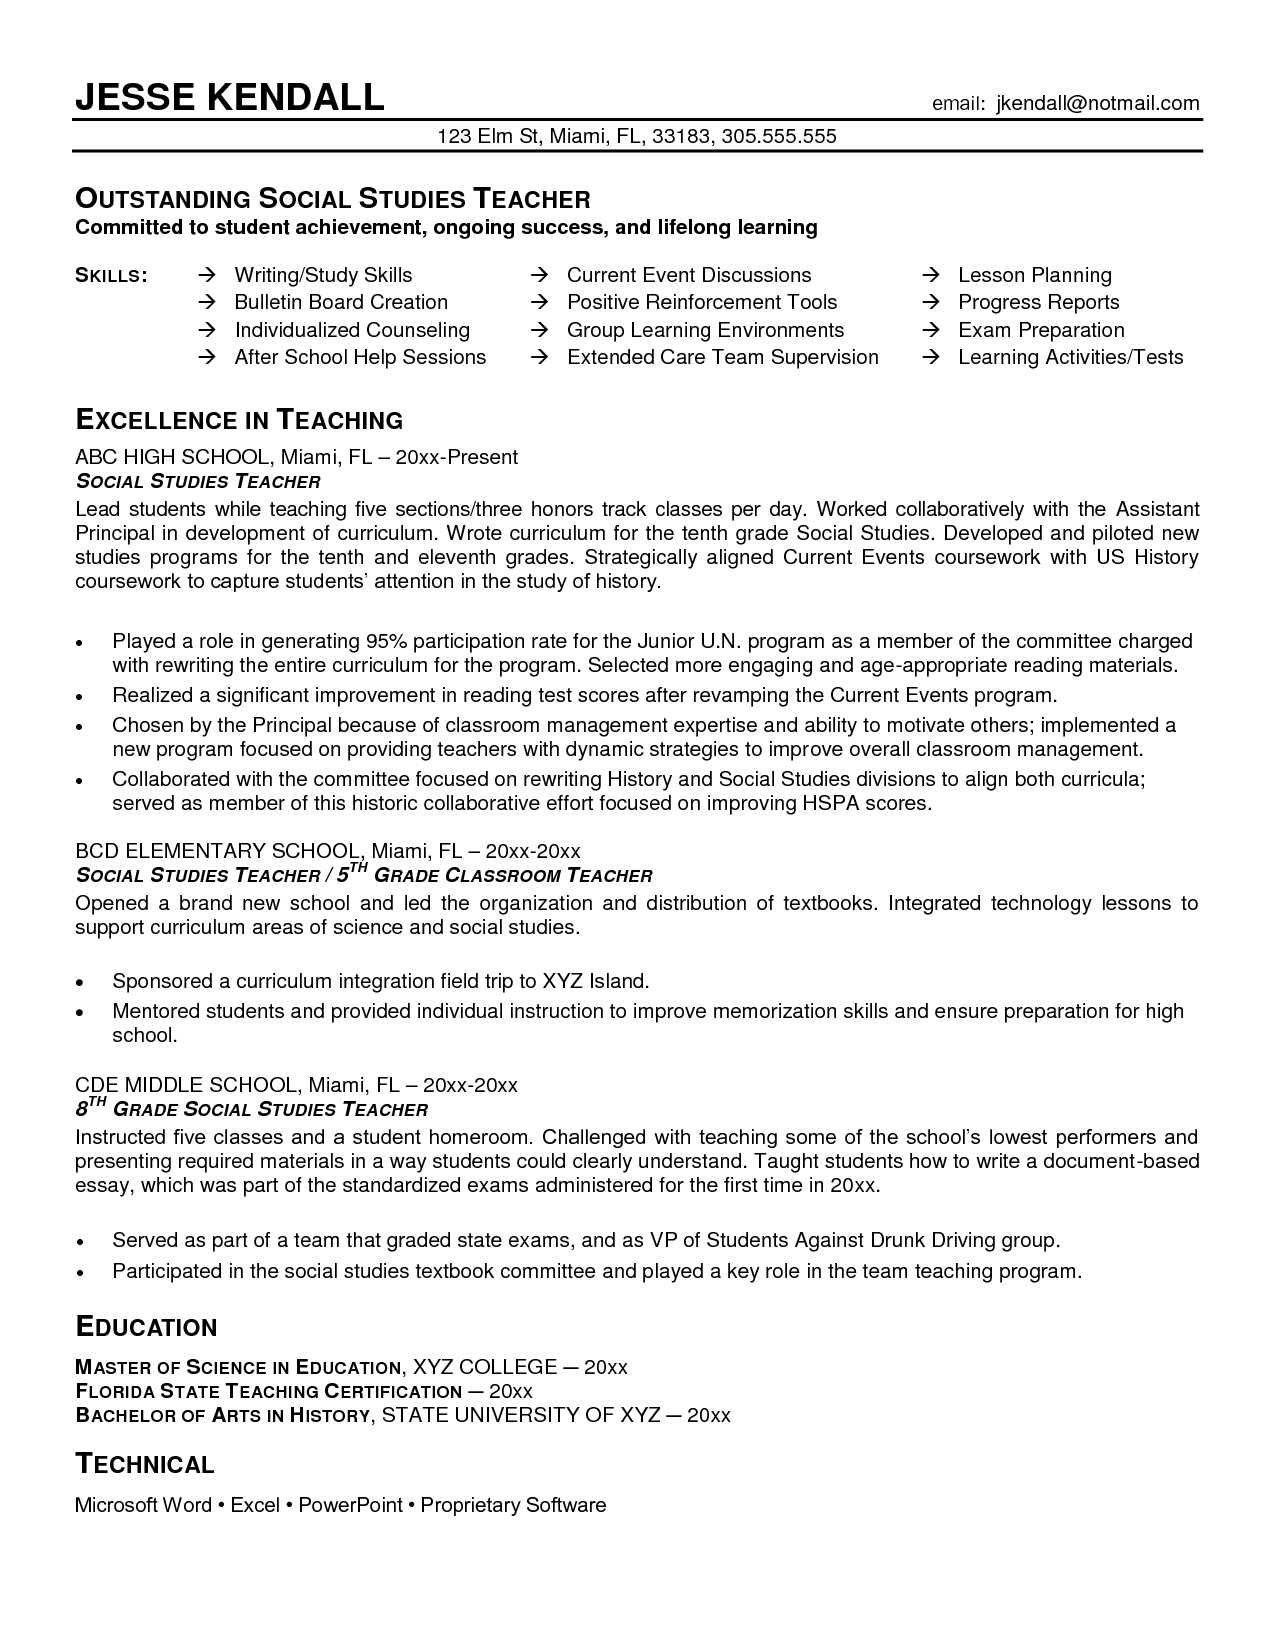 history teacher sample resume - Google Search | work | Pinterest ...